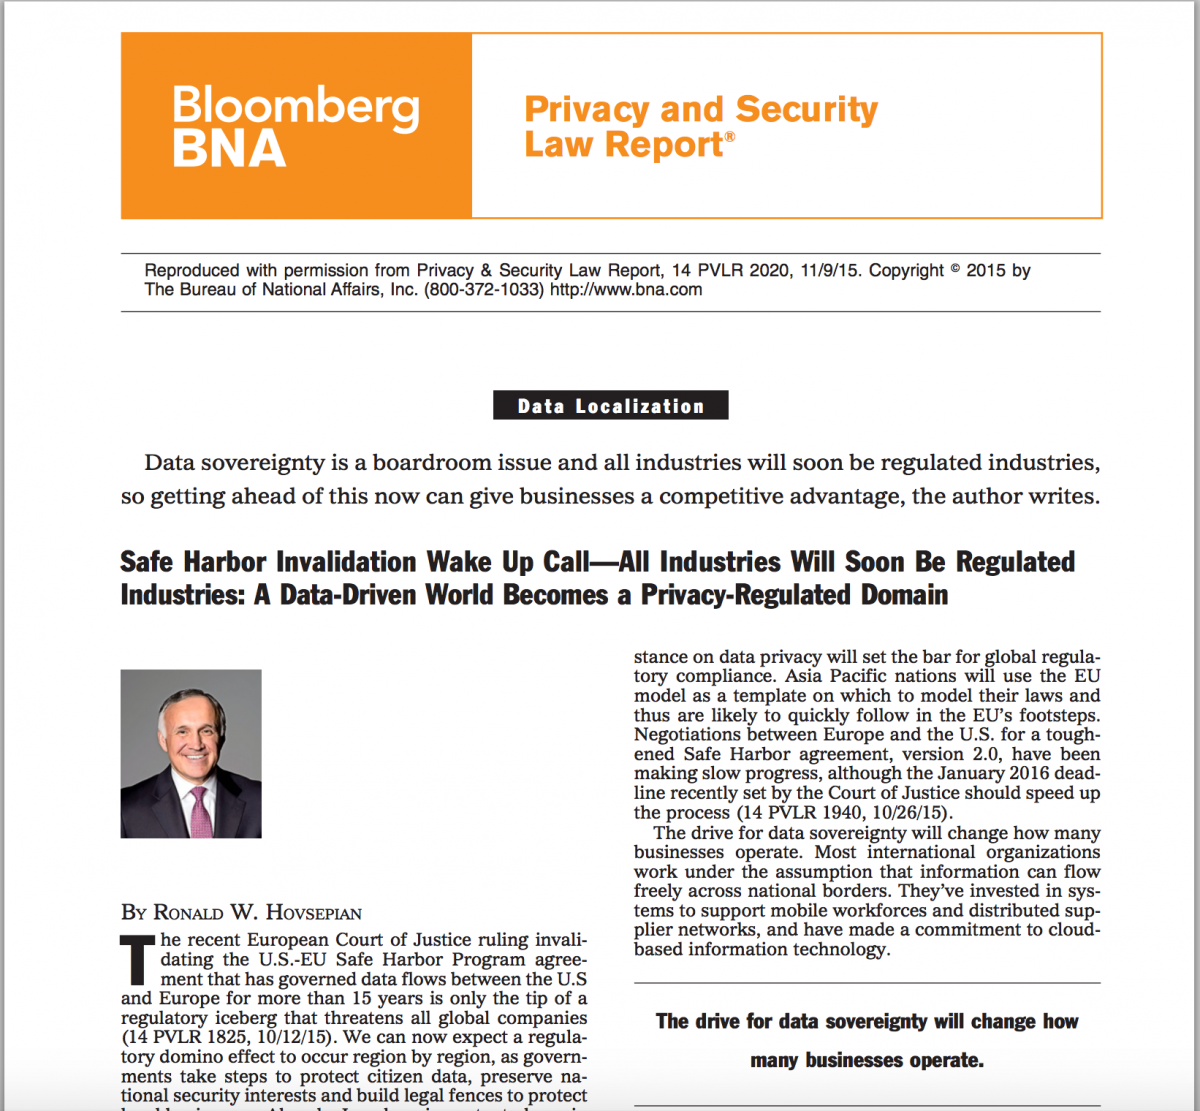 Bloomberg BNA - Privacy and Security Law Report®